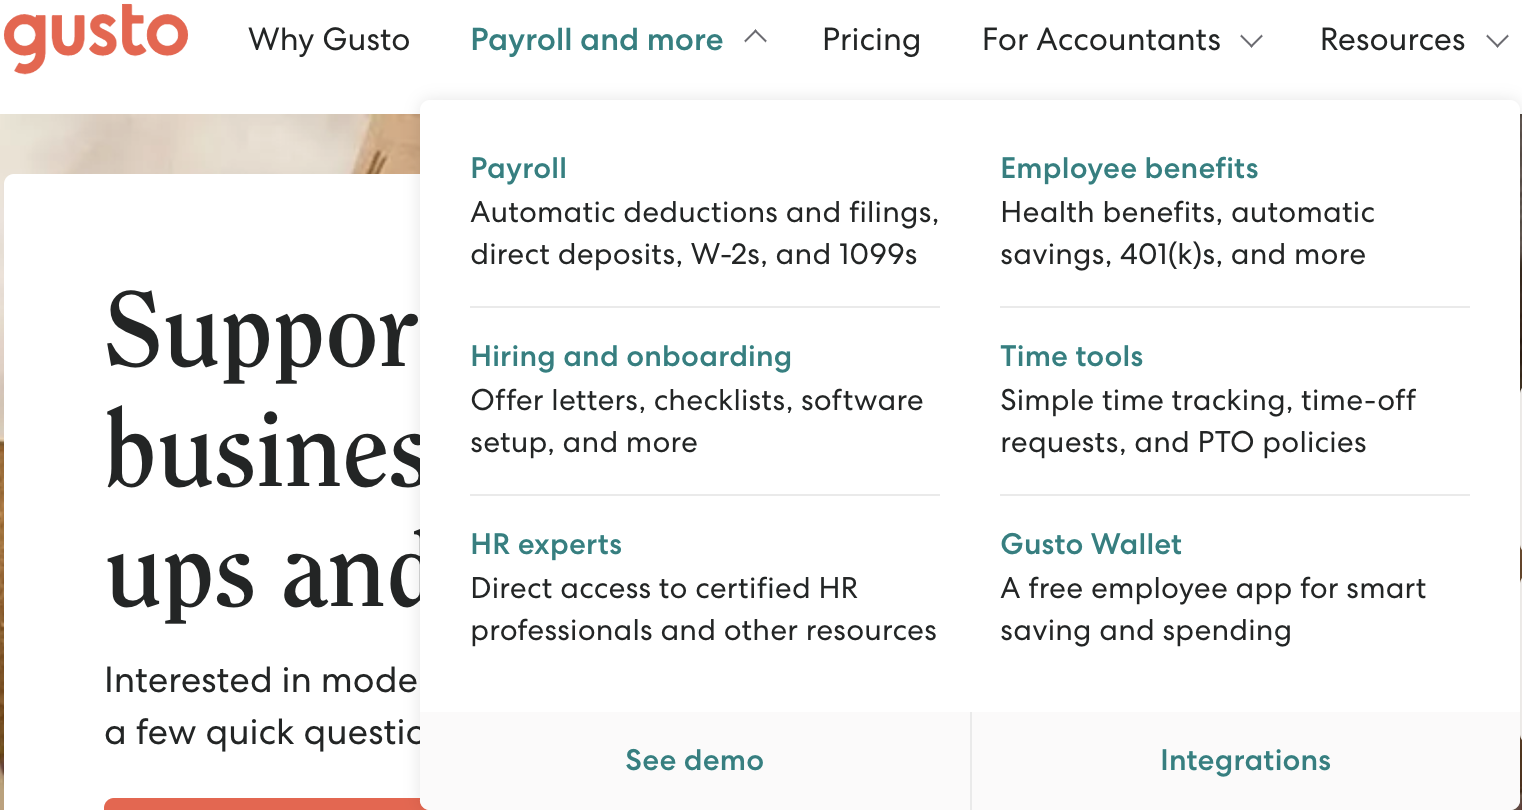 an image of Gusto, an HR management software, landing page